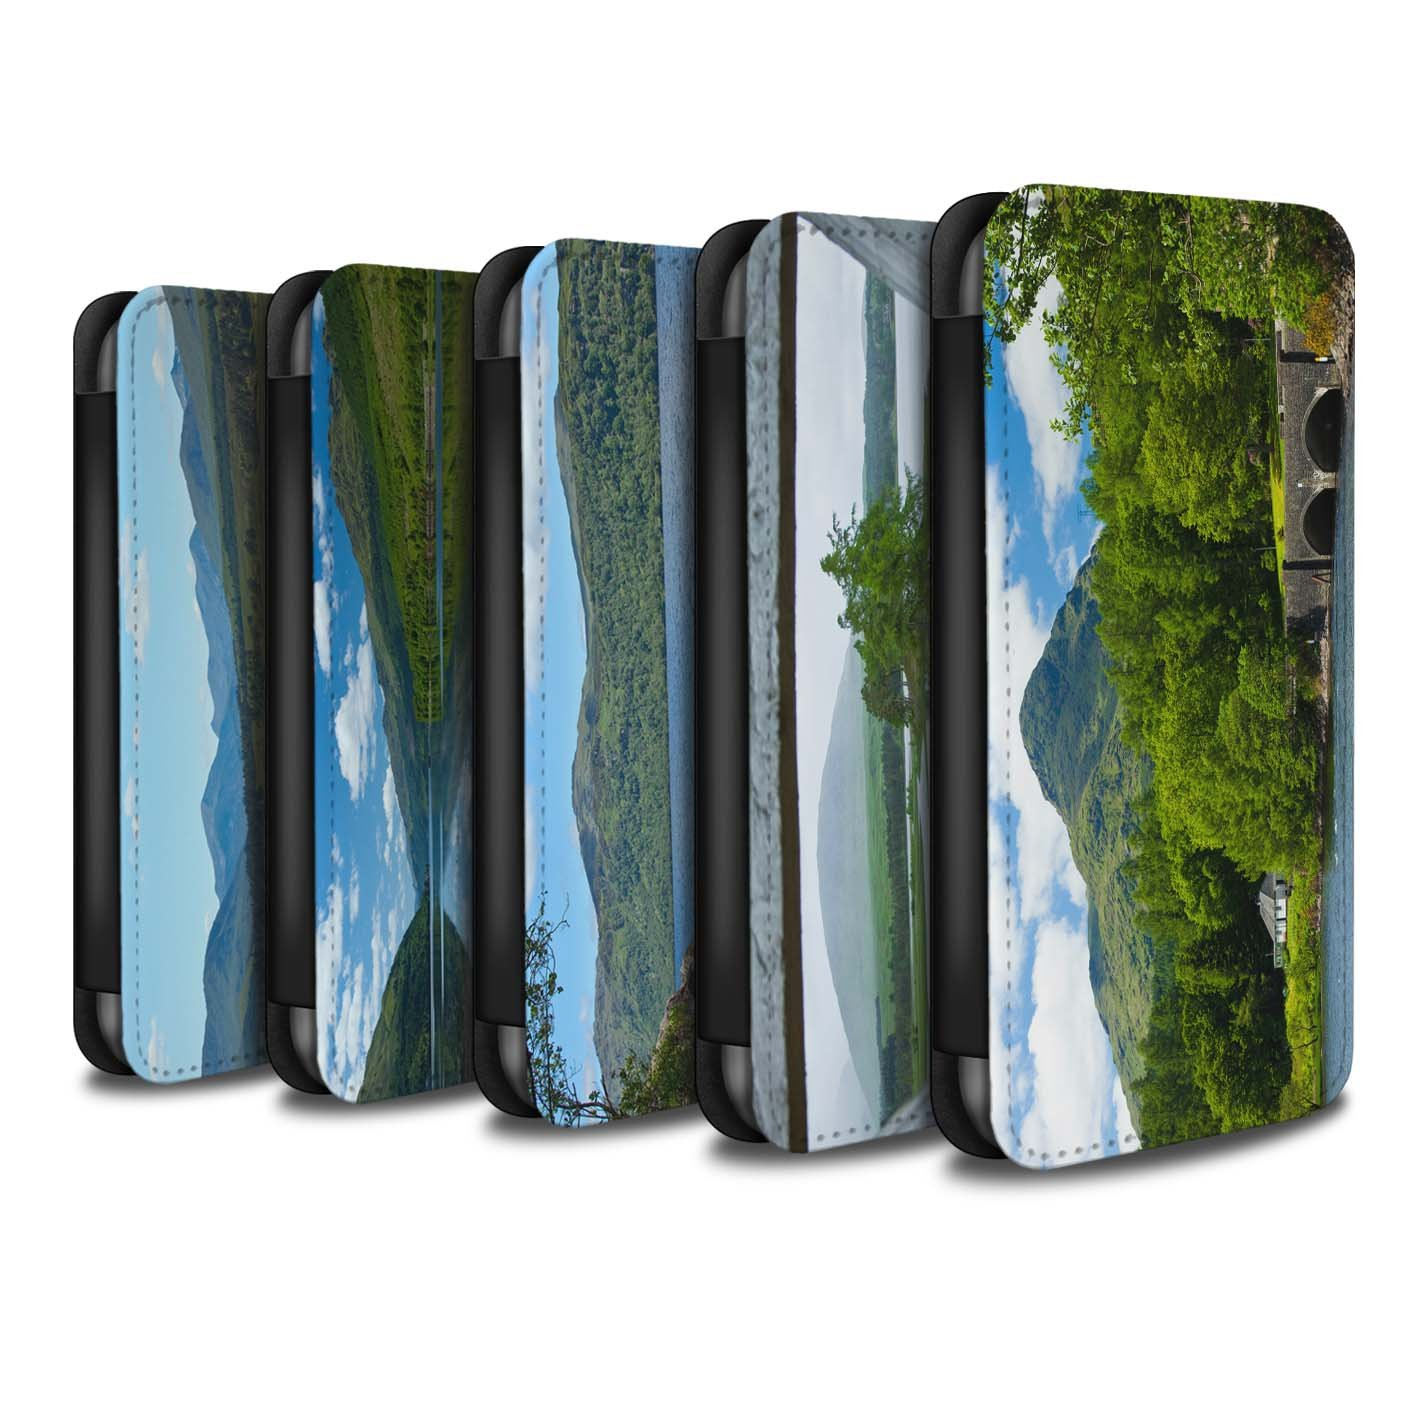 STUFF4 PU Leather Wallet Flip Case/Cover for Apple iPhone X/10 / Pack 14pcs Design / Scottish Landscape Collection by Stuff4® (Image #8)